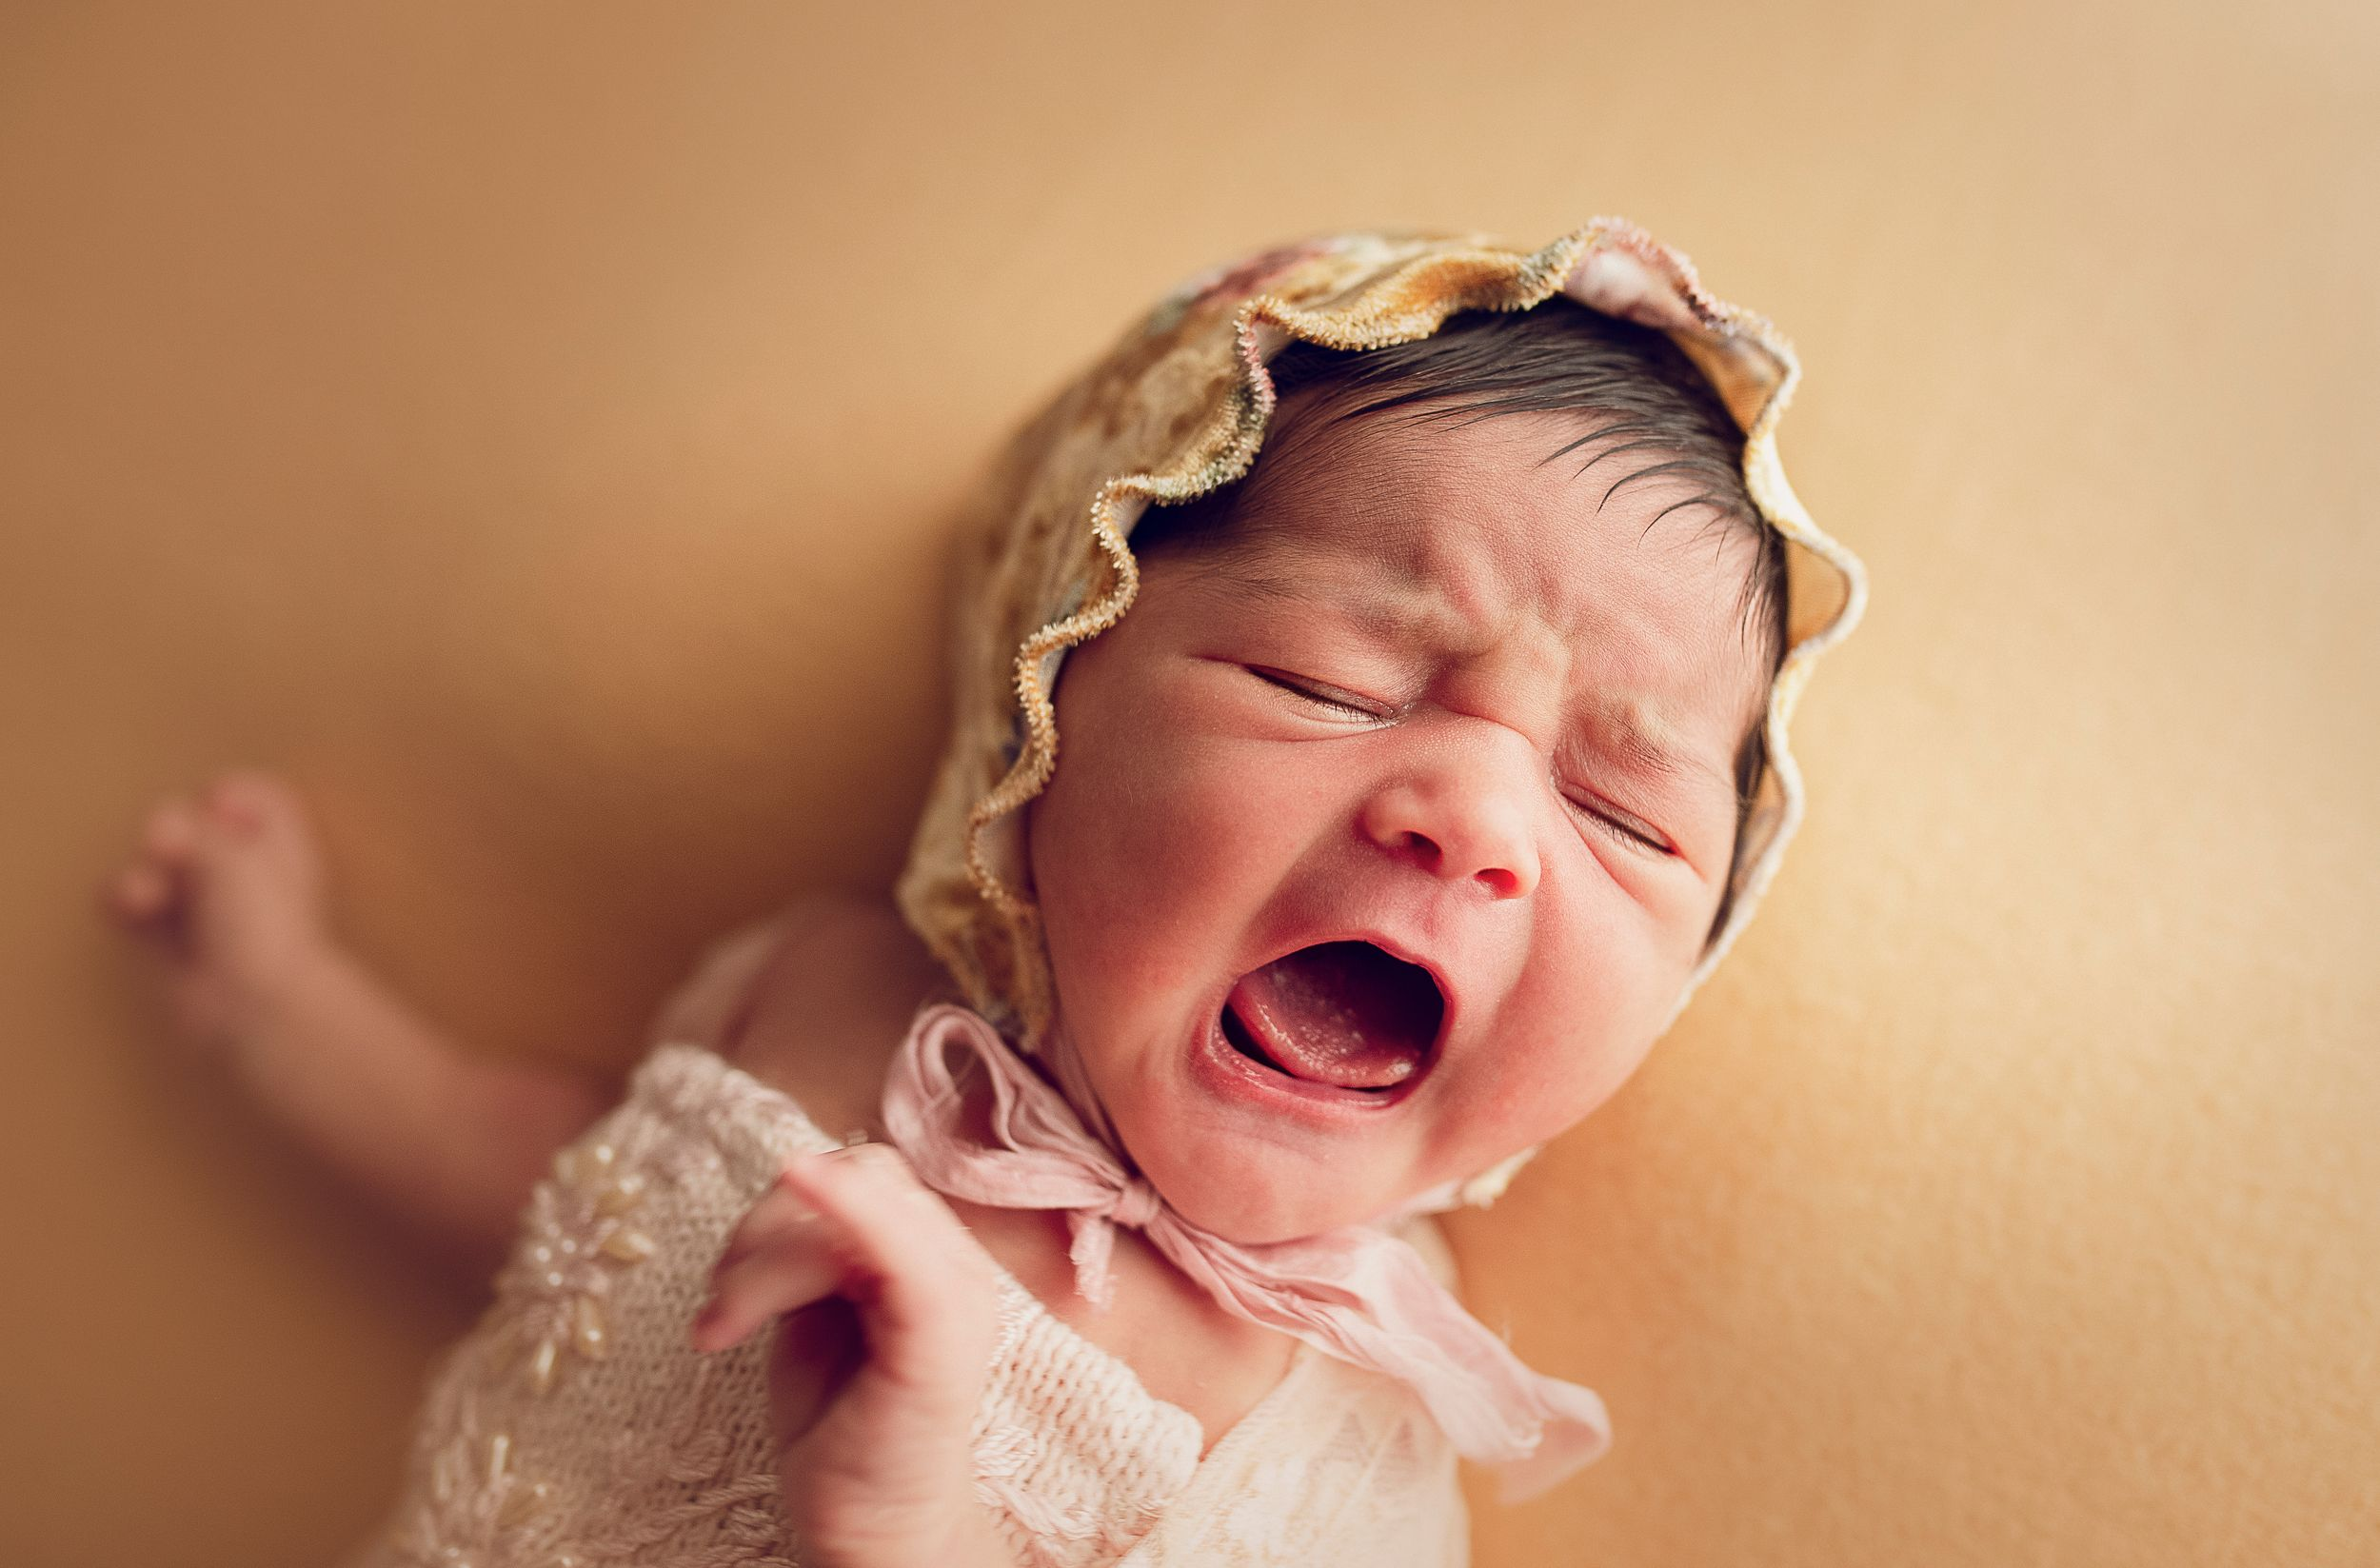 newborn baby wearing a bonnet crying peach backdrop